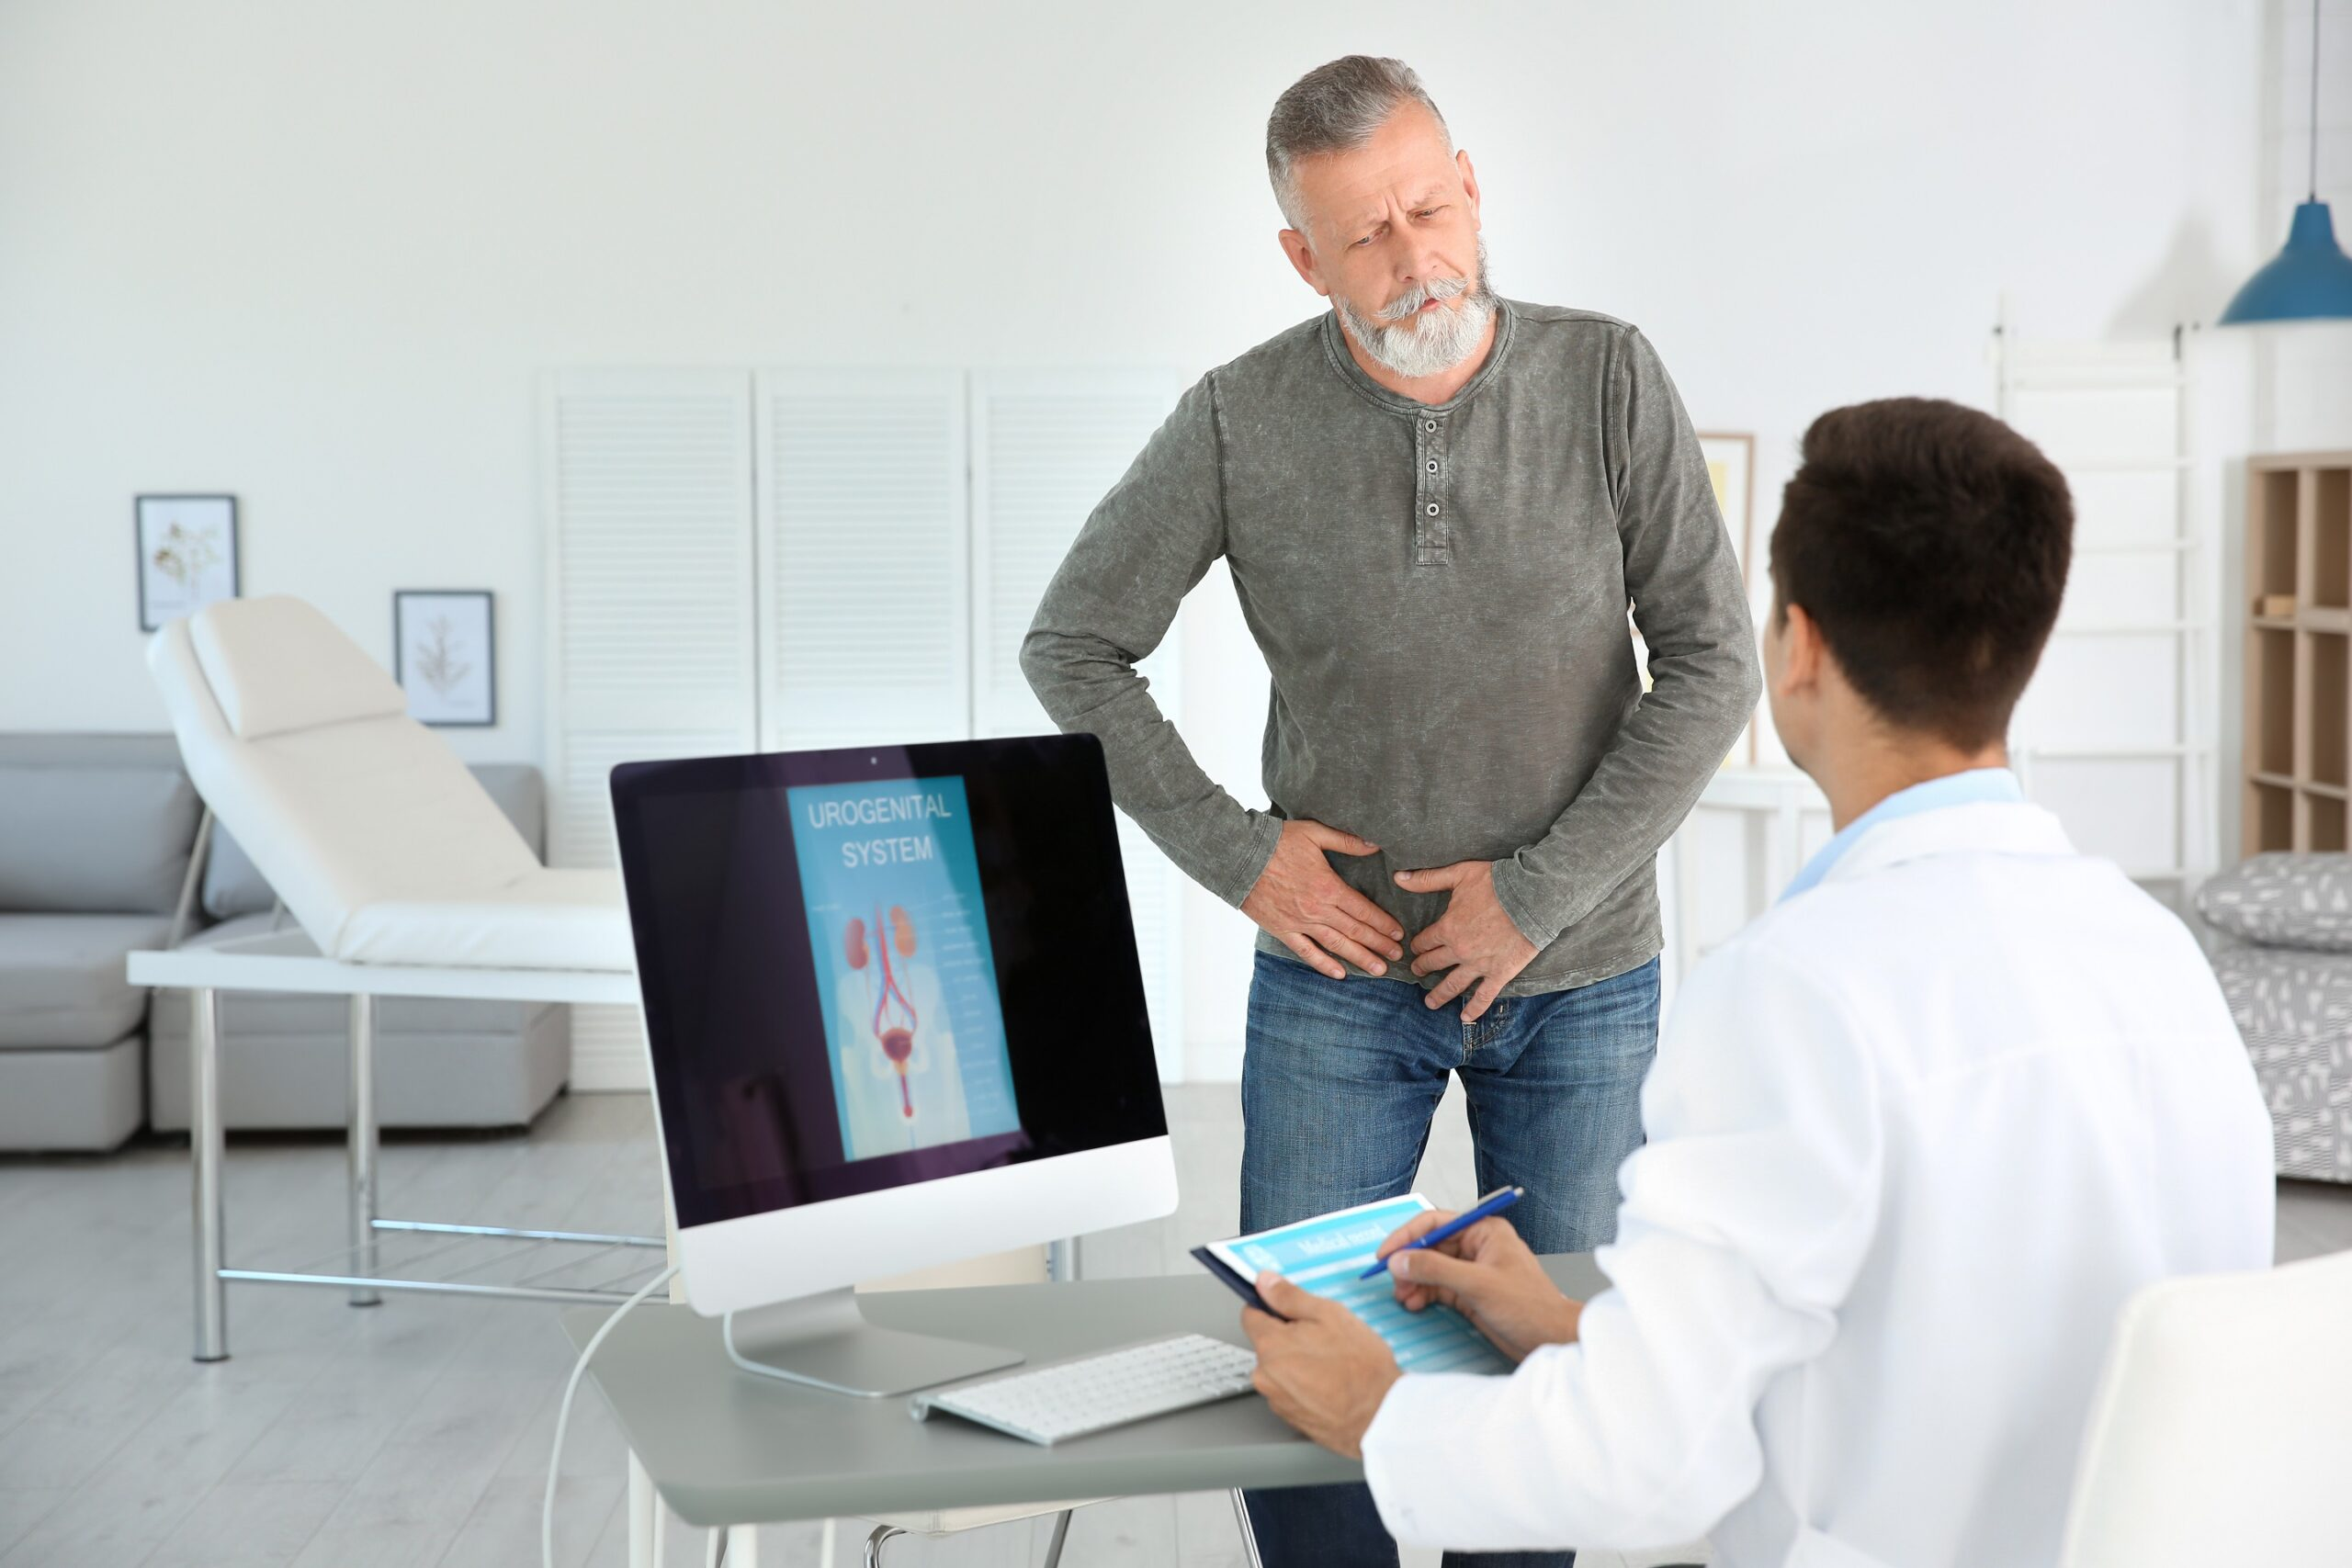 Prostate cancer can be diagnosed through urine - a healing practice